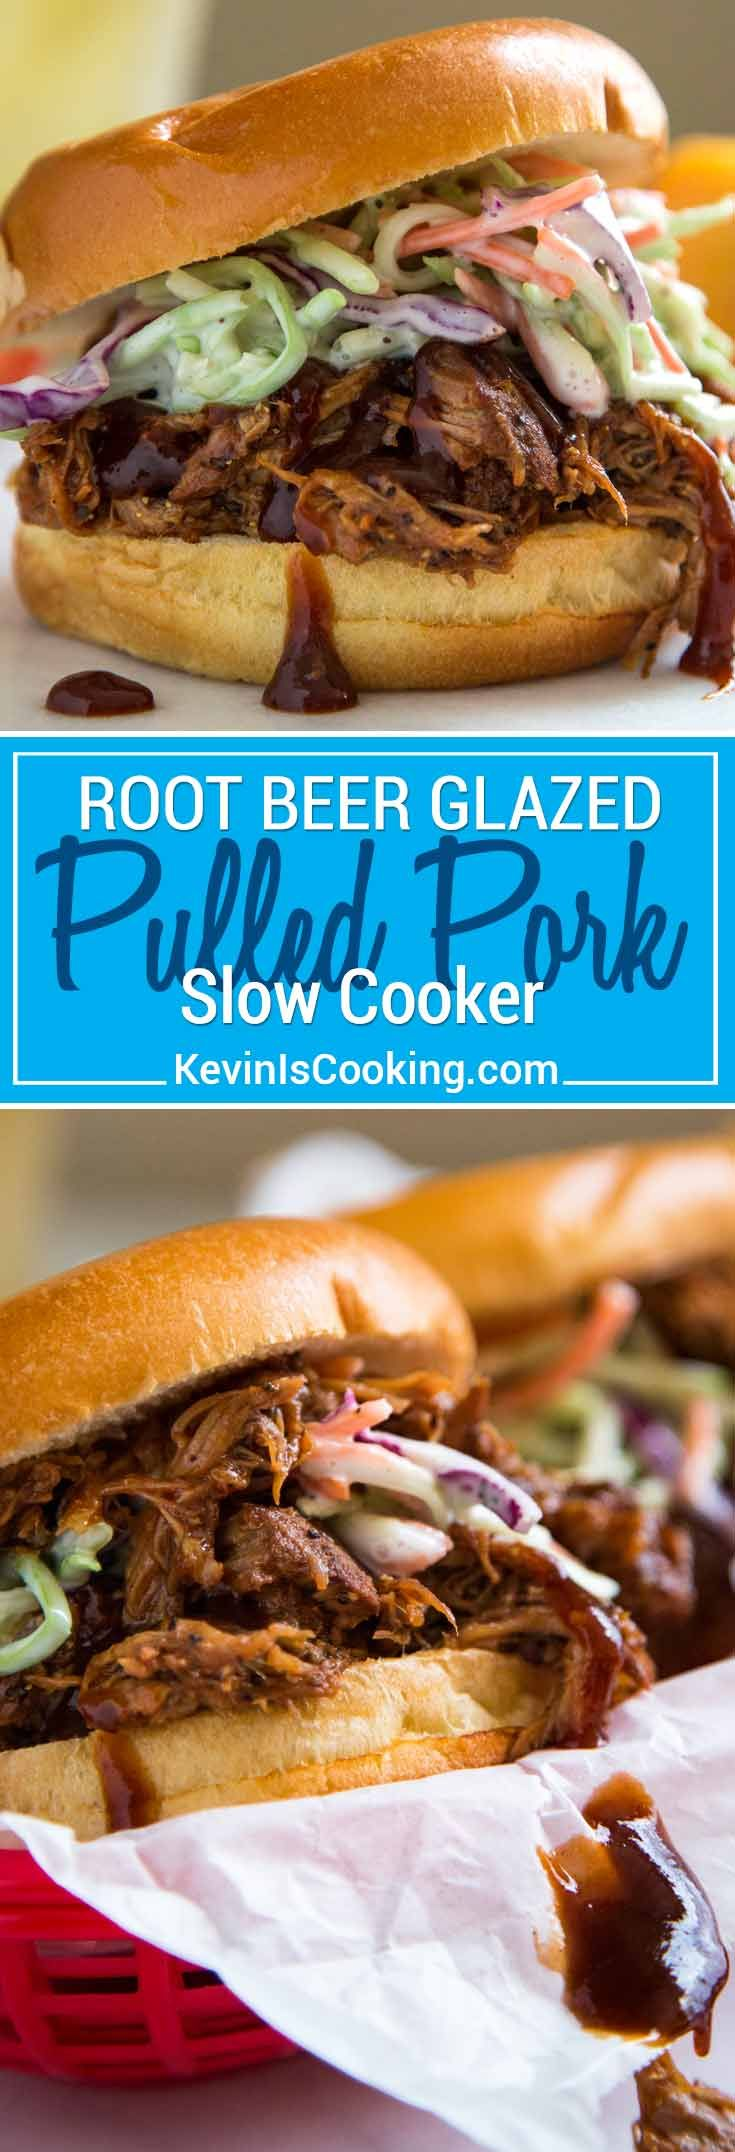 This Root Beer Glazed Slow Cooker Pulled Pork is juicy, tender and sticky sweet with a bite, and gets a dose of reduced root beer for an extra flavor punch!  via @keviniscooking